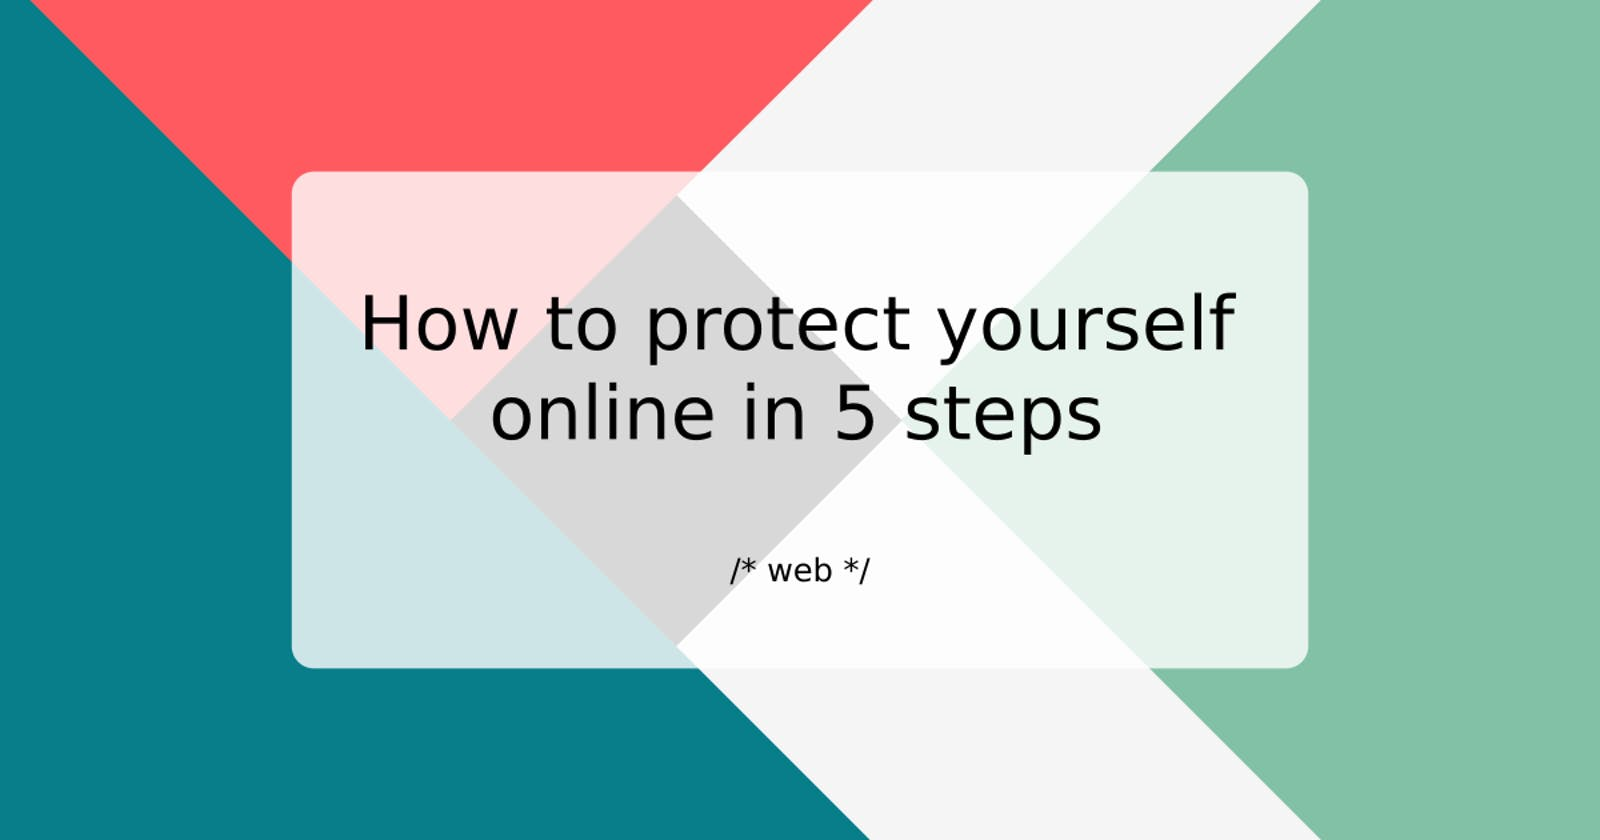 How to protect yourself online in 5 steps